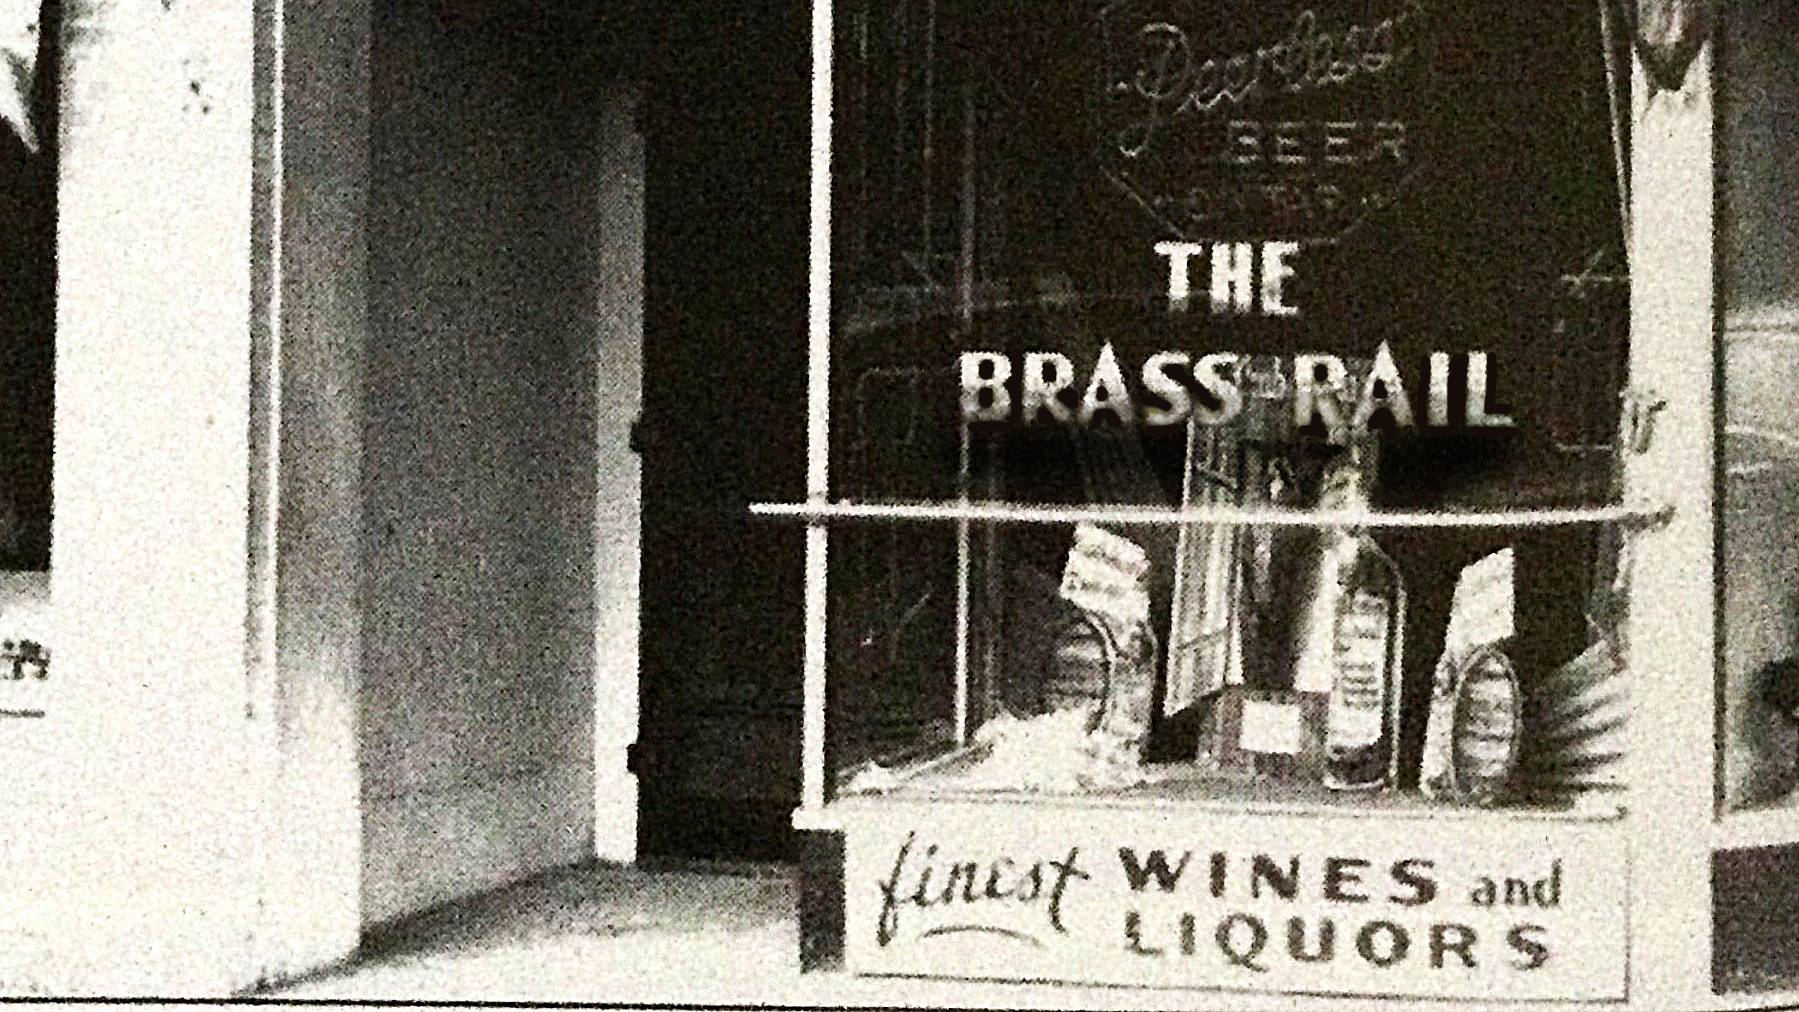 The Brass Rail business